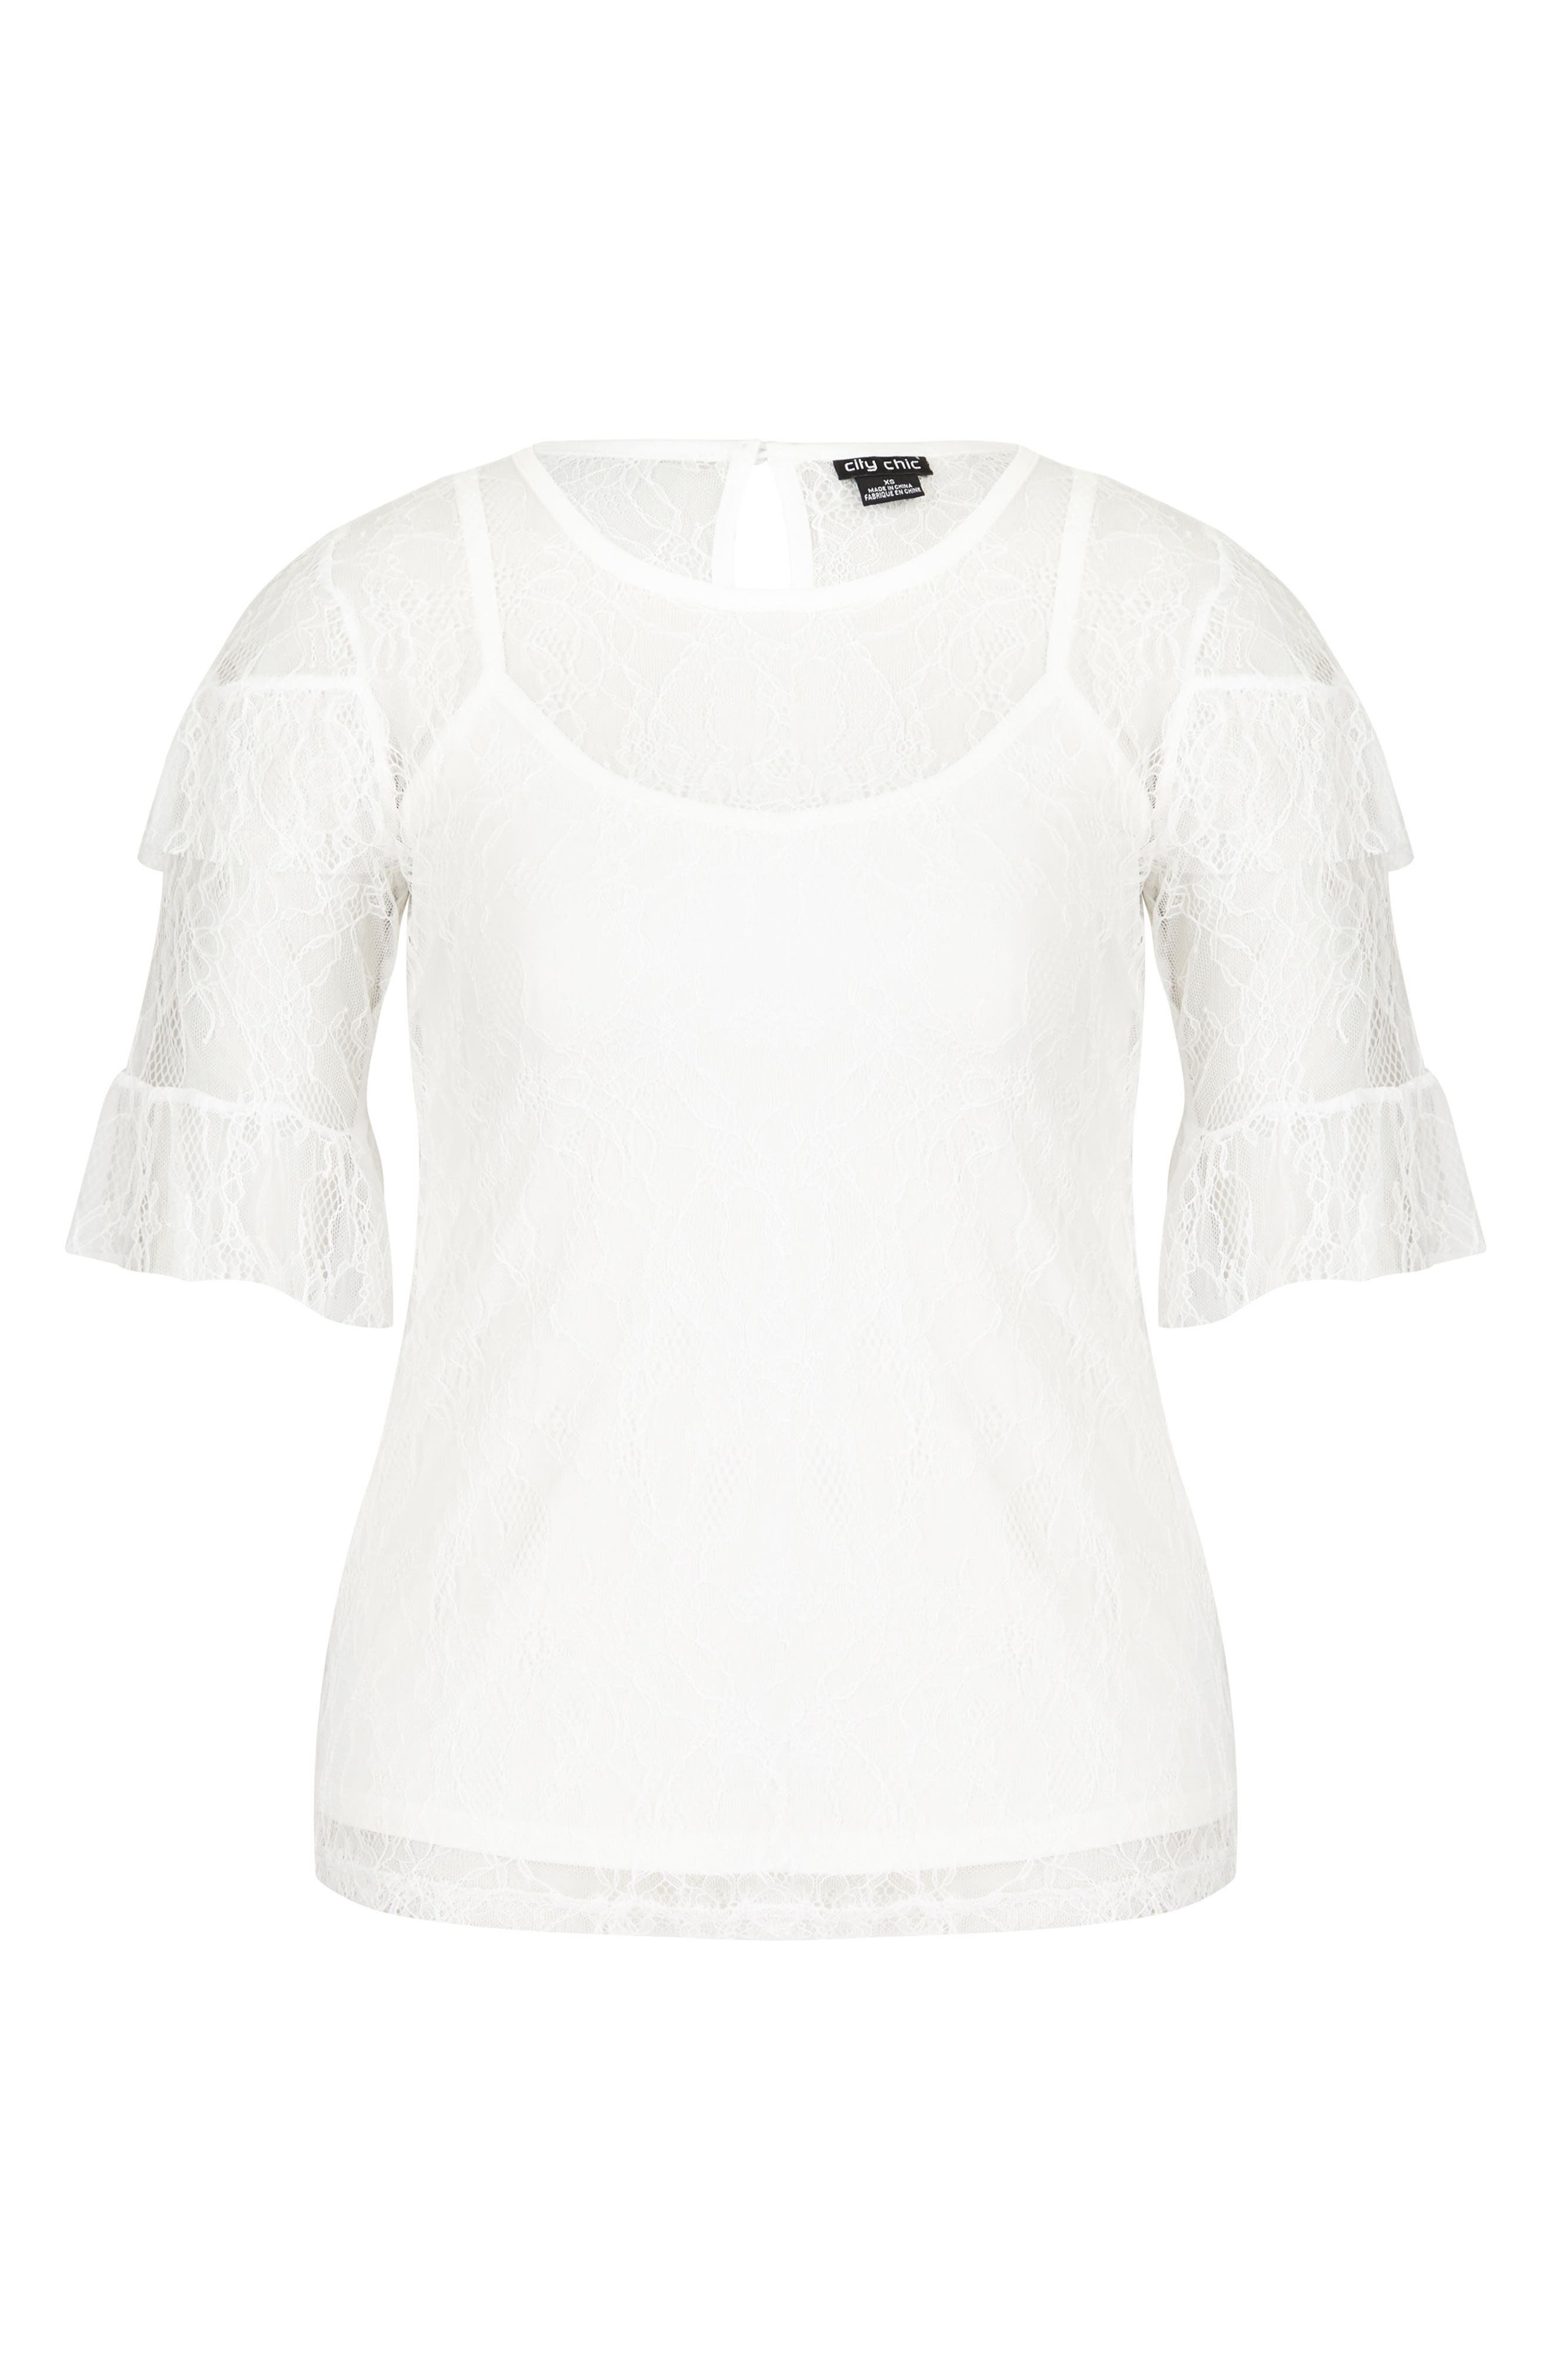 Lace Power Top,                             Alternate thumbnail 4, color,                             IVORY